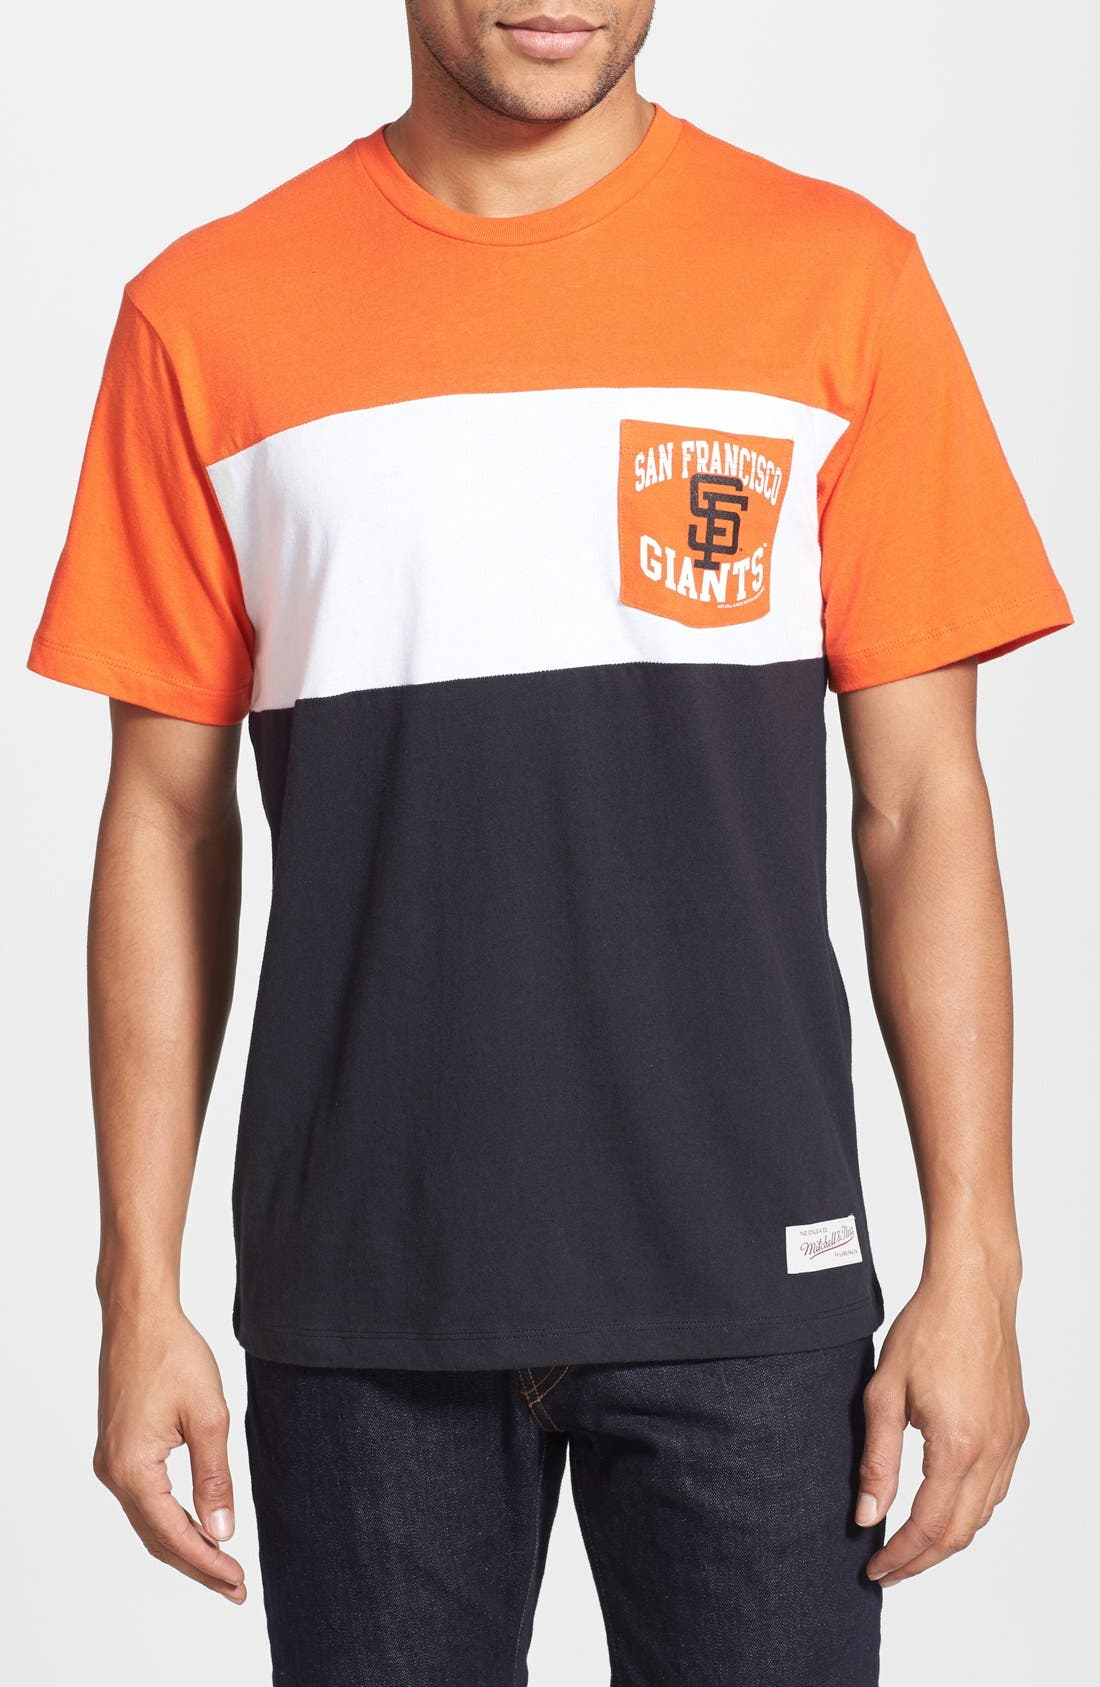 Main Image - Mitchell & Ness 'San Francisco Giants - Margin of Victory' Tailored Fit T-Shirt